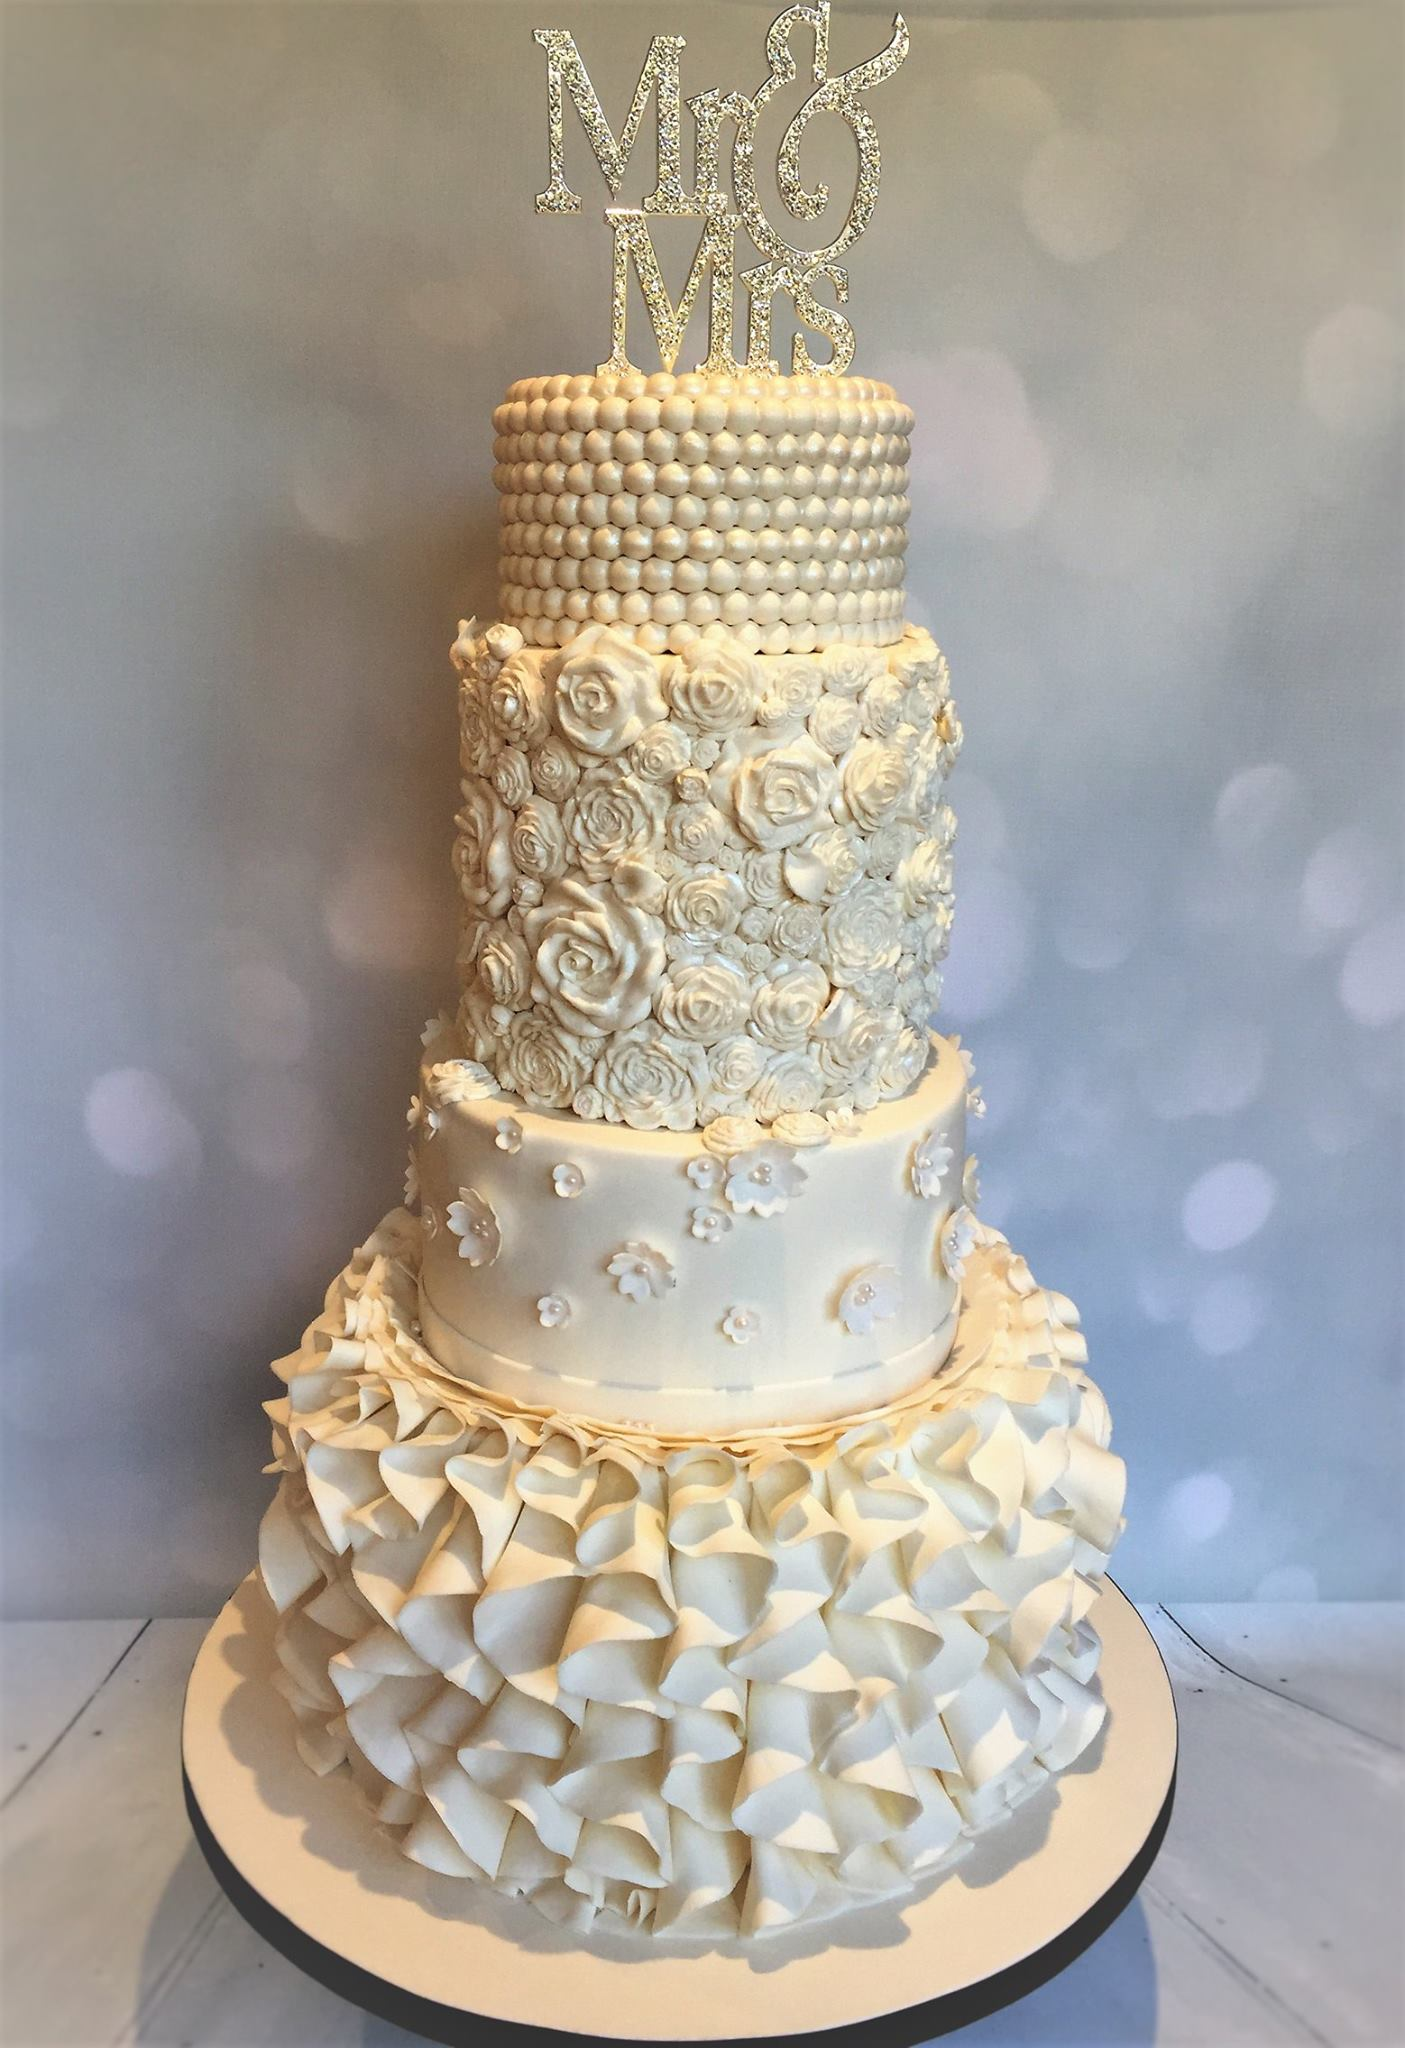 Ivory wedding cake with rosettes and ruffles